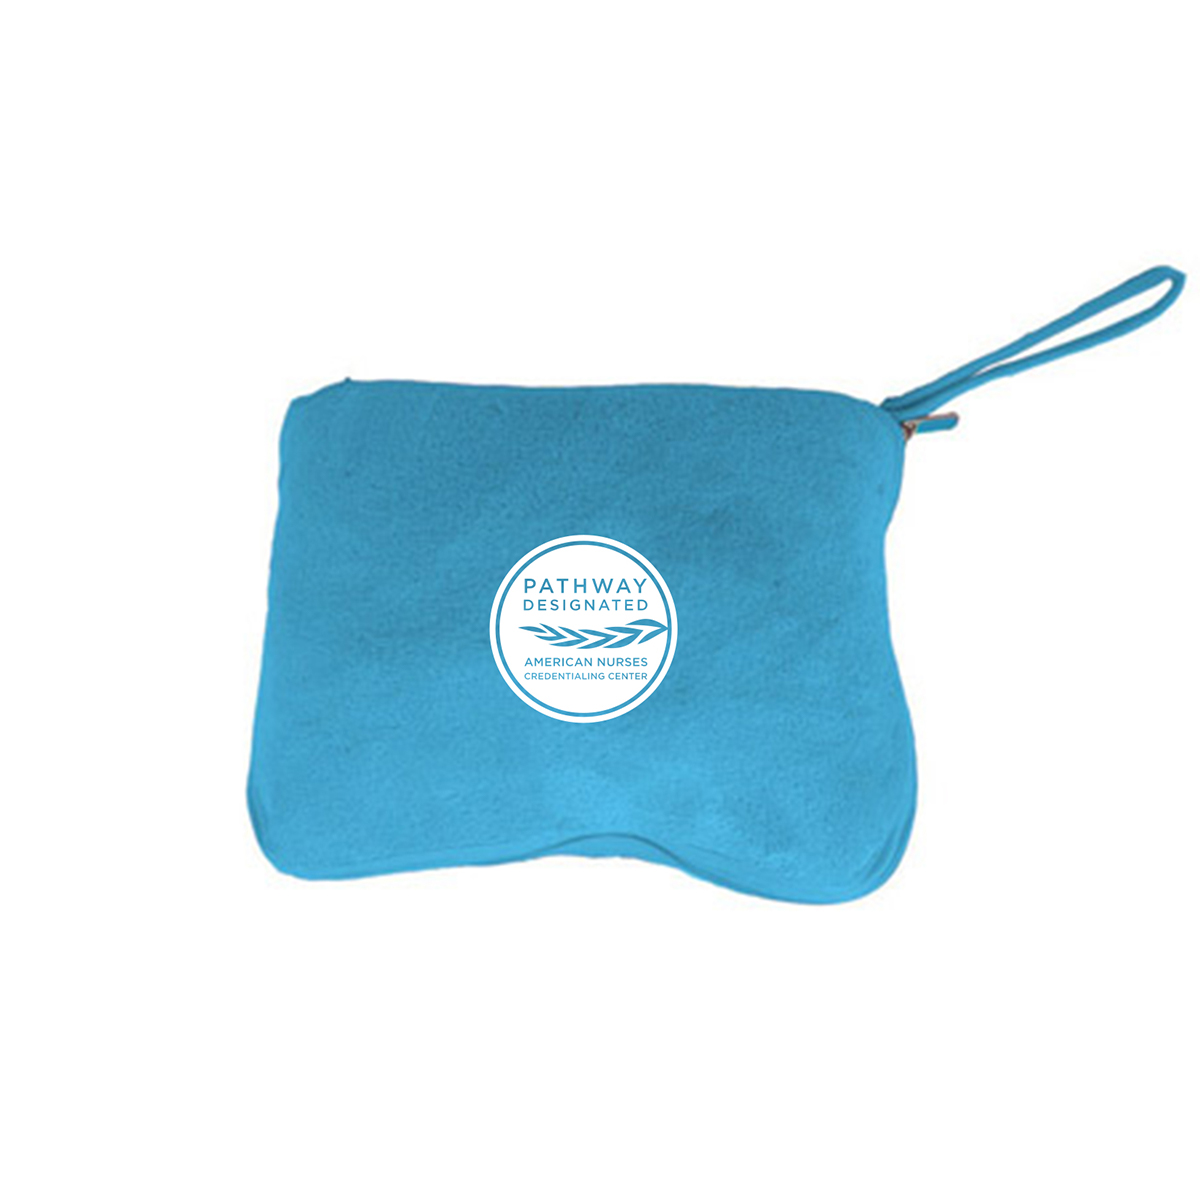 ANCC Pathway Foldable Pillow Blanket